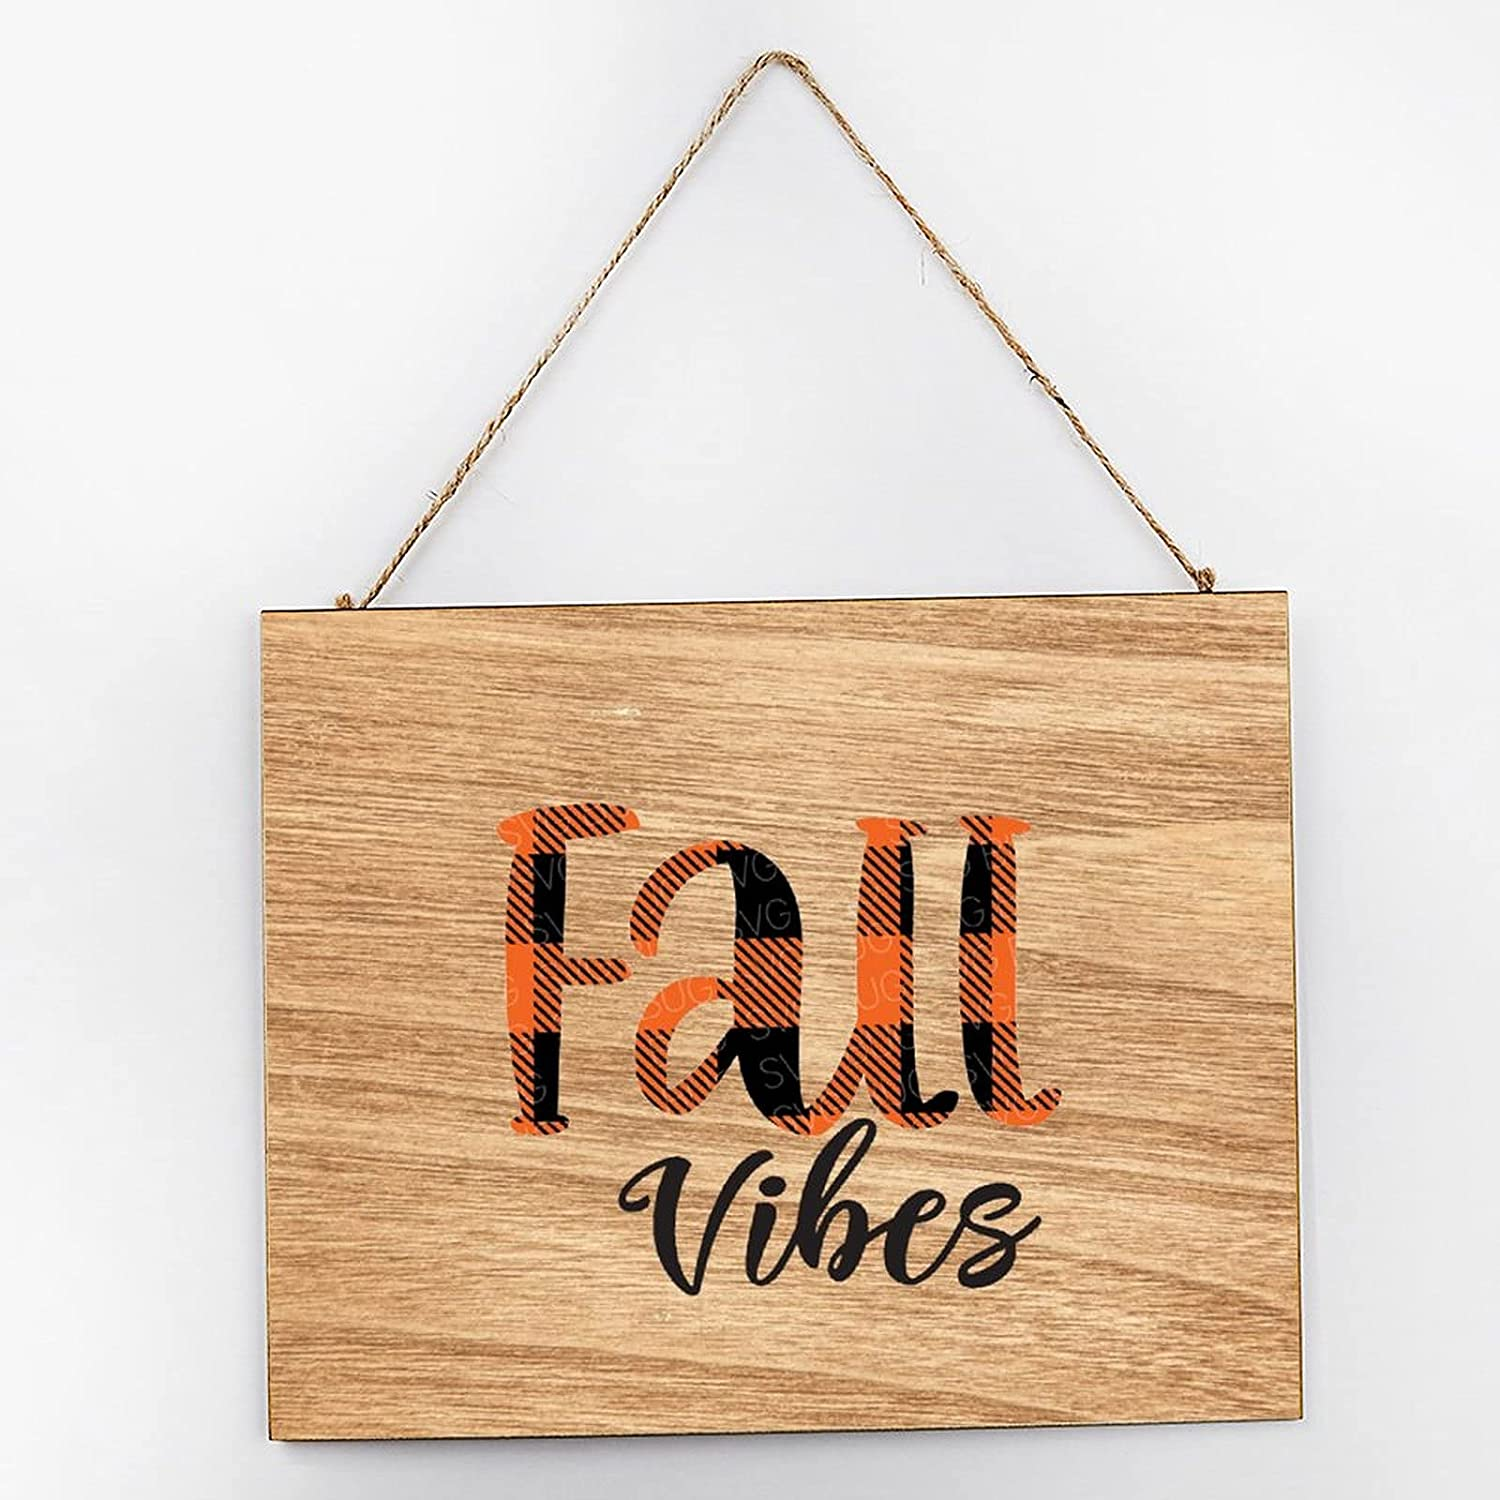 Fall Vibes File, Buffalo Plaid File, Fall File, Autumn File, Thanksgiving Rustic Wood Block Sign Wood Sign 10×12×0.2 inch: Home & Kitchen